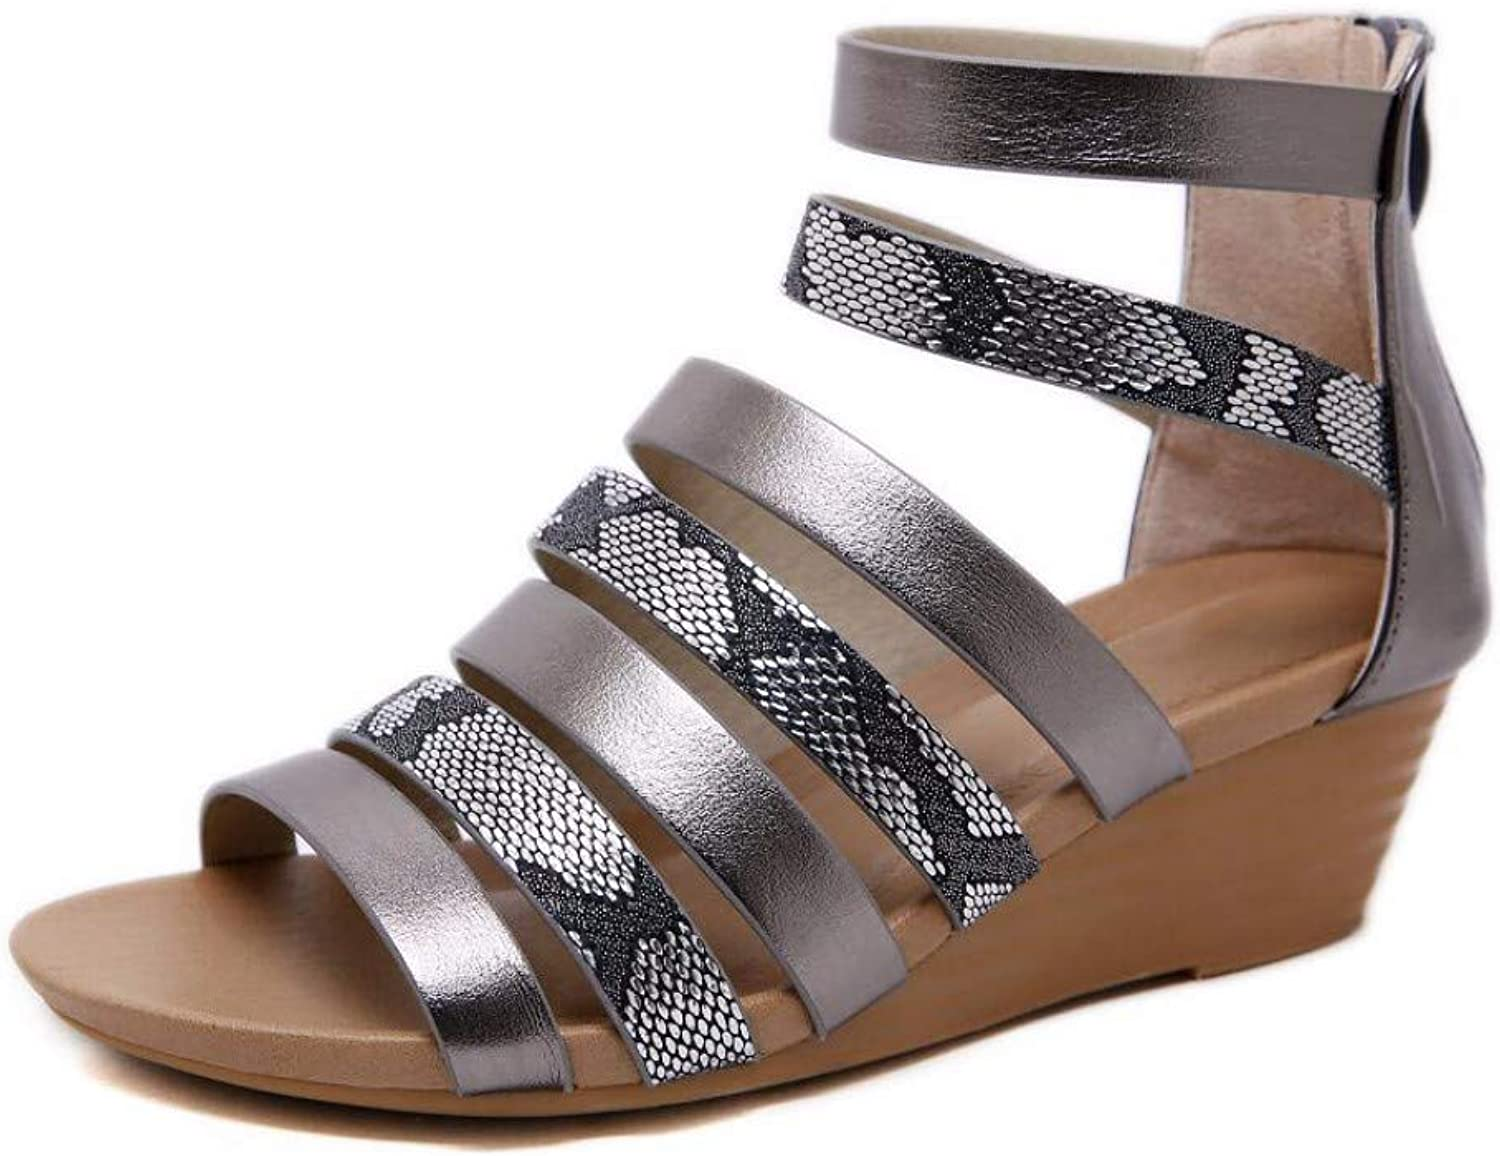 ZPSPZ sandalen damen Ladies's Summer Open -Toed Strap -on Sandals European Slope -Ferse Large -Größe Comfortable Roman schuhe,Asche,Dreiig -neun